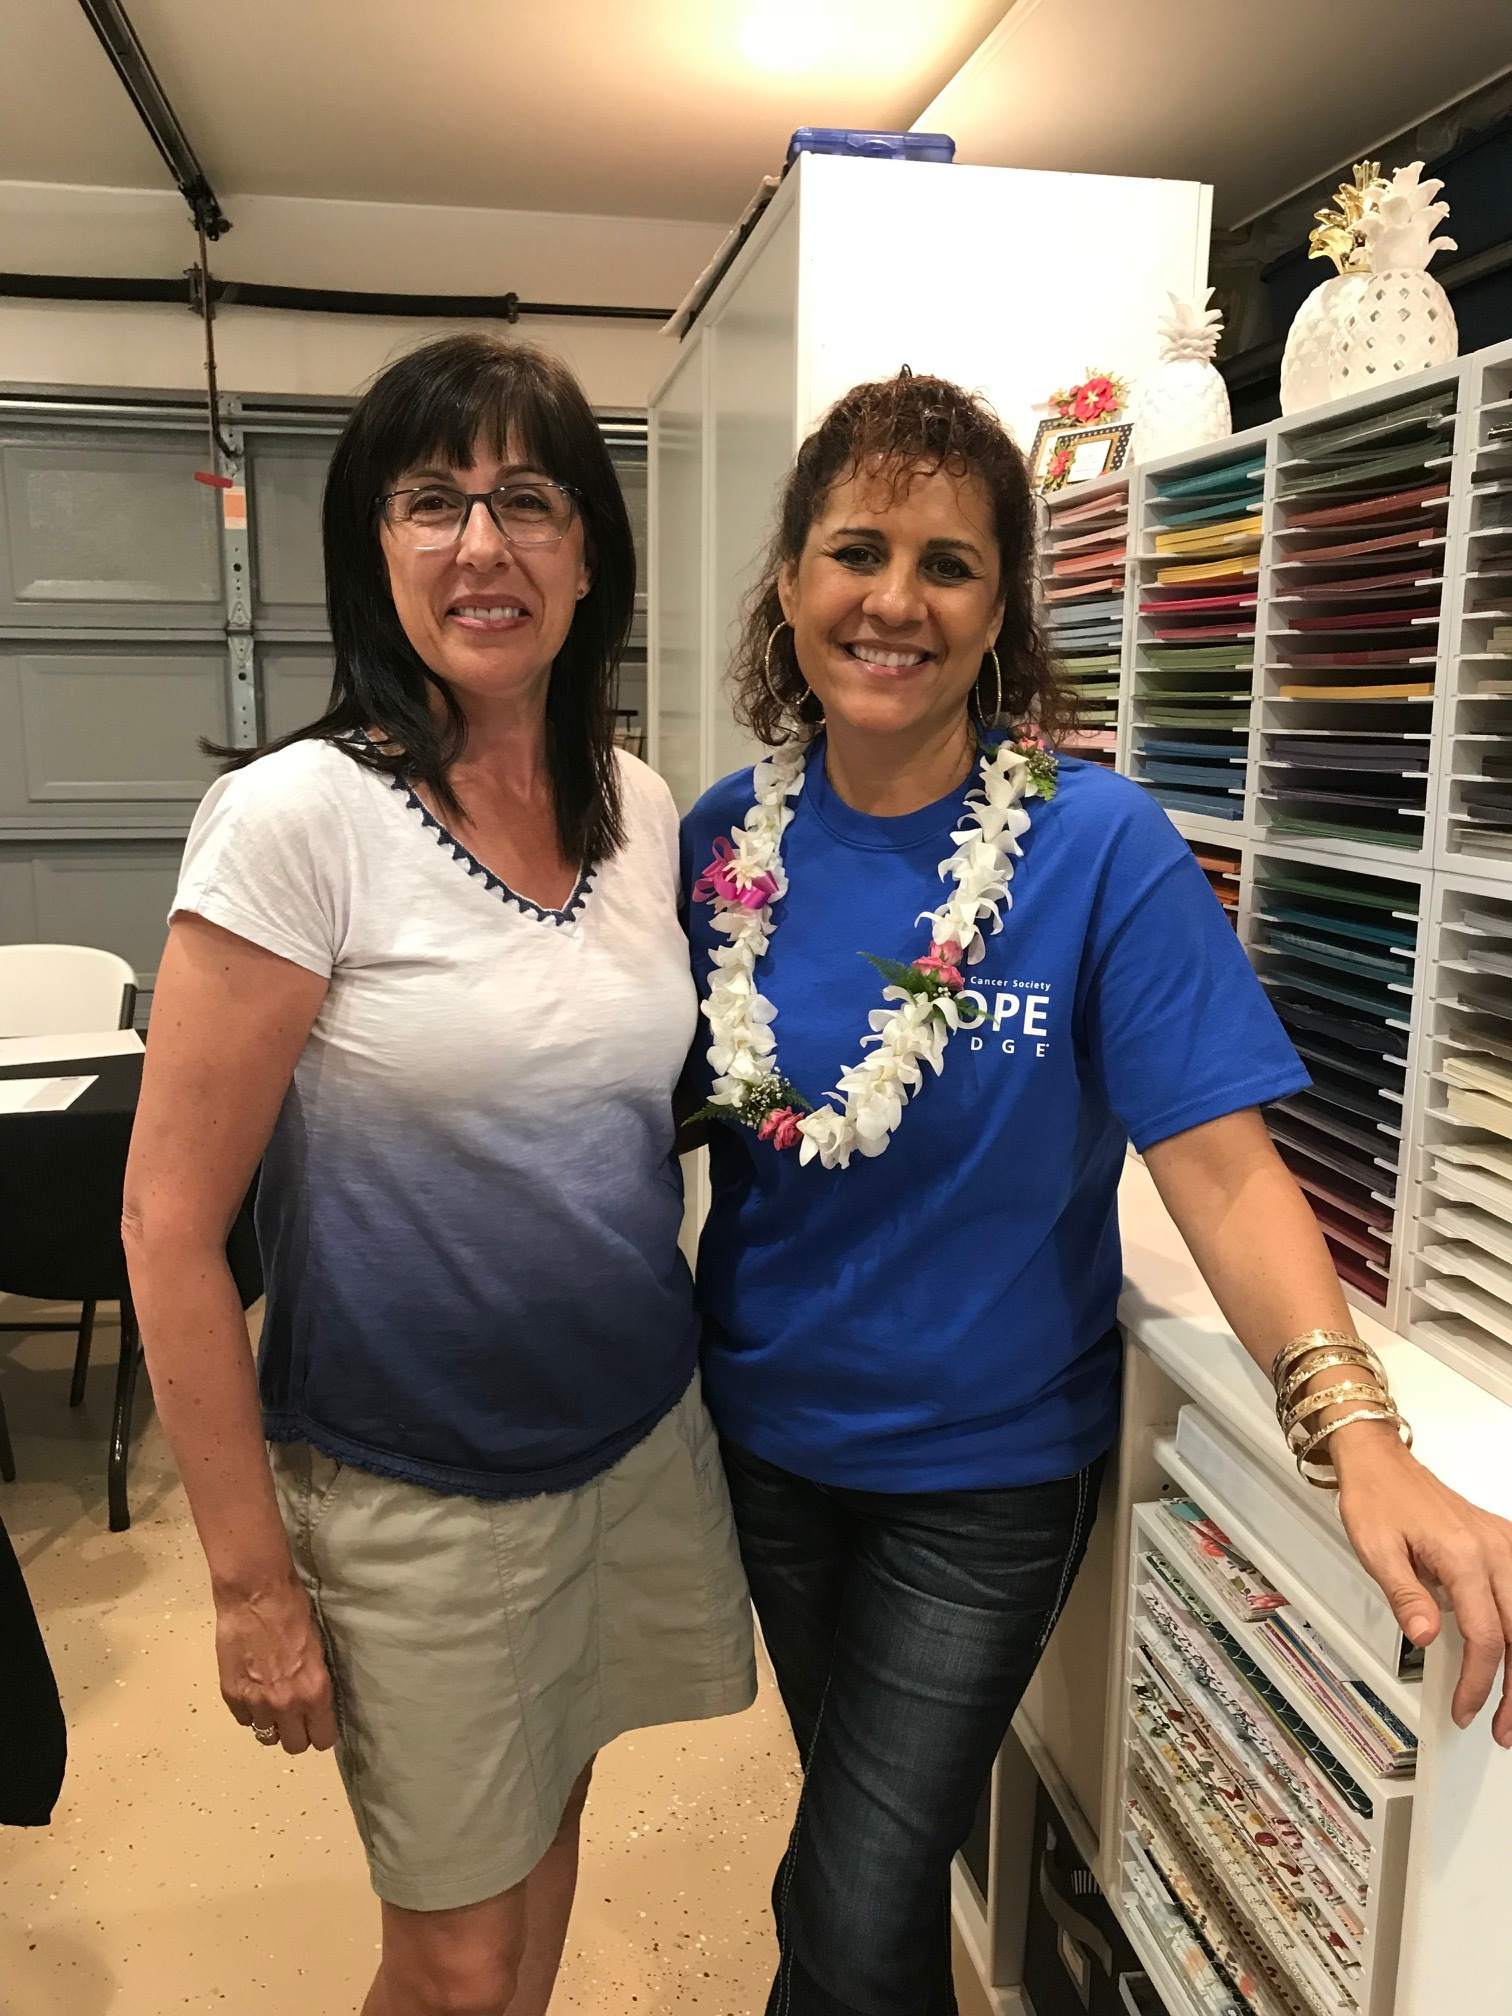 Brenda and Cindy - www.stampedwithaloha.com